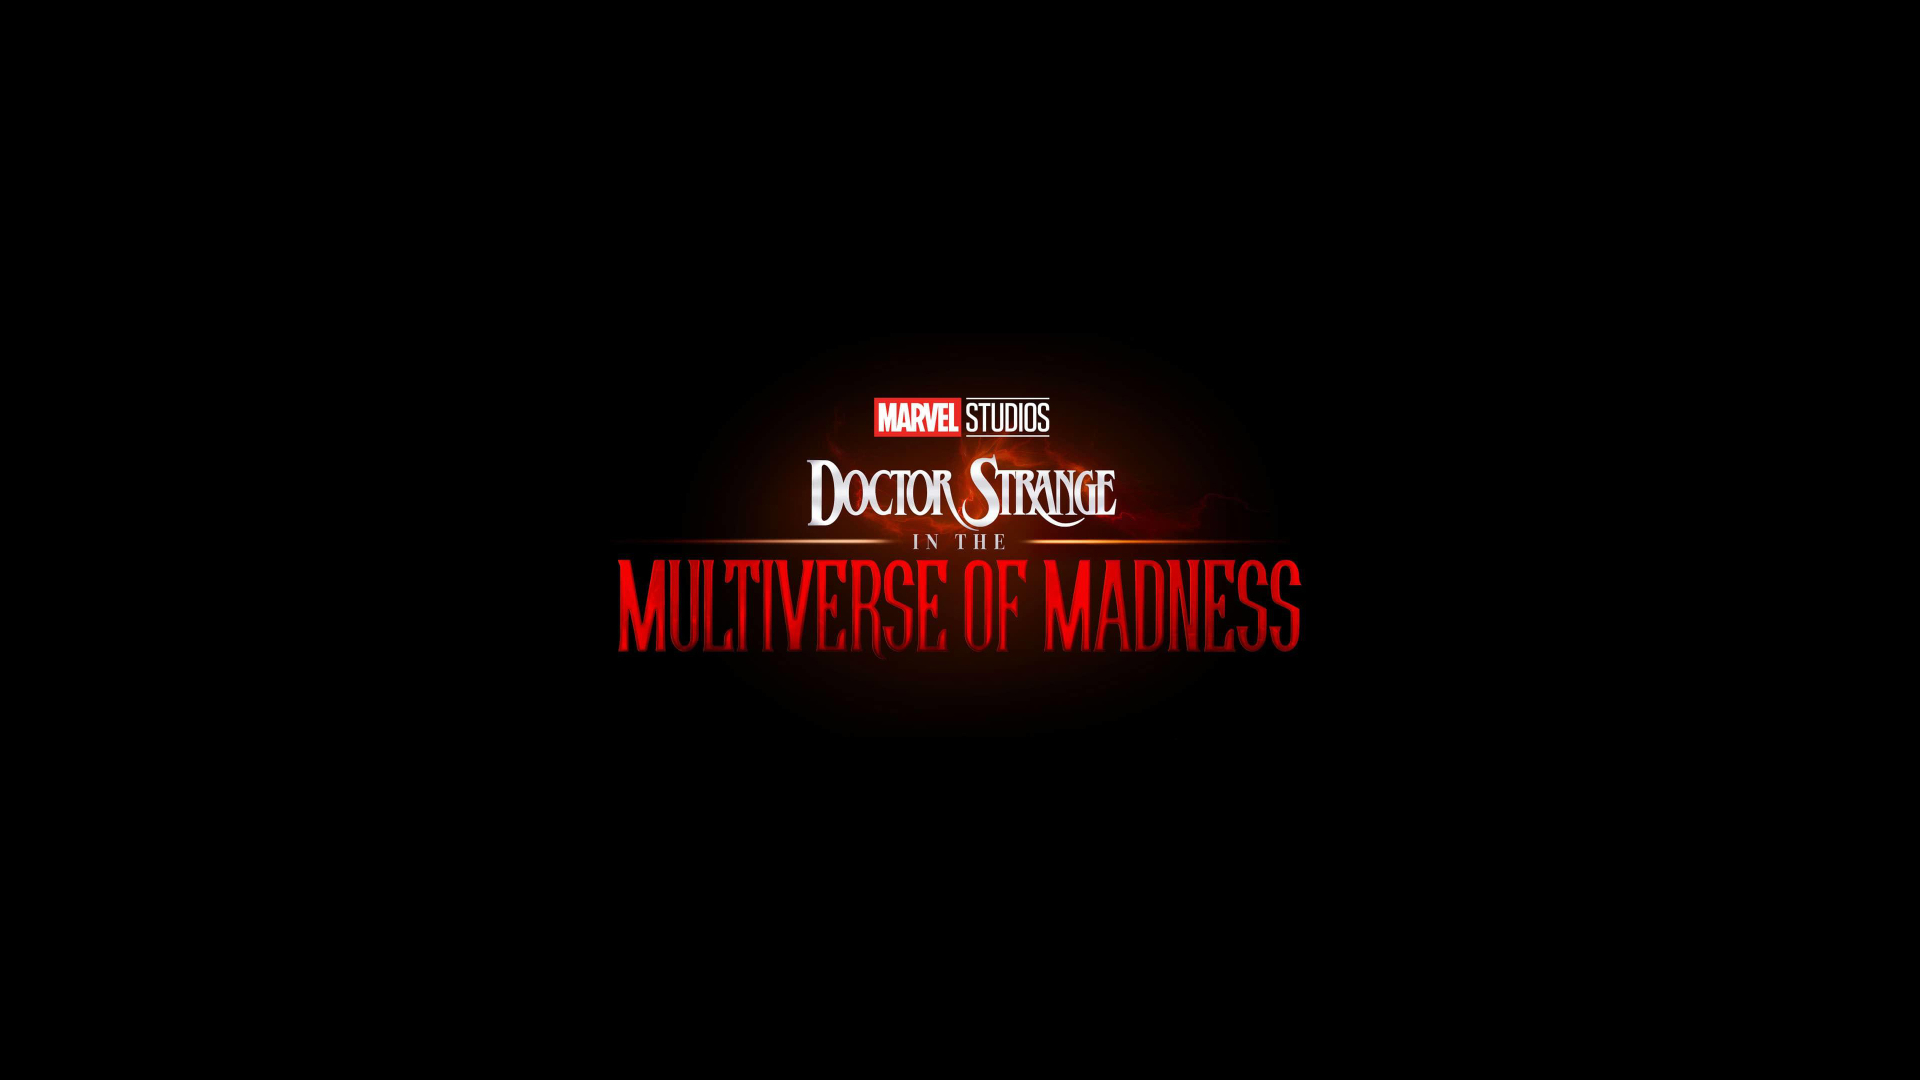 1920x1080 Doctor Strange In The Multiverse Of Madness Comic Con Poster 1080p Laptop Full Hd Wallpaper Hd Movies 4k Wallpapers Images Photos And Background